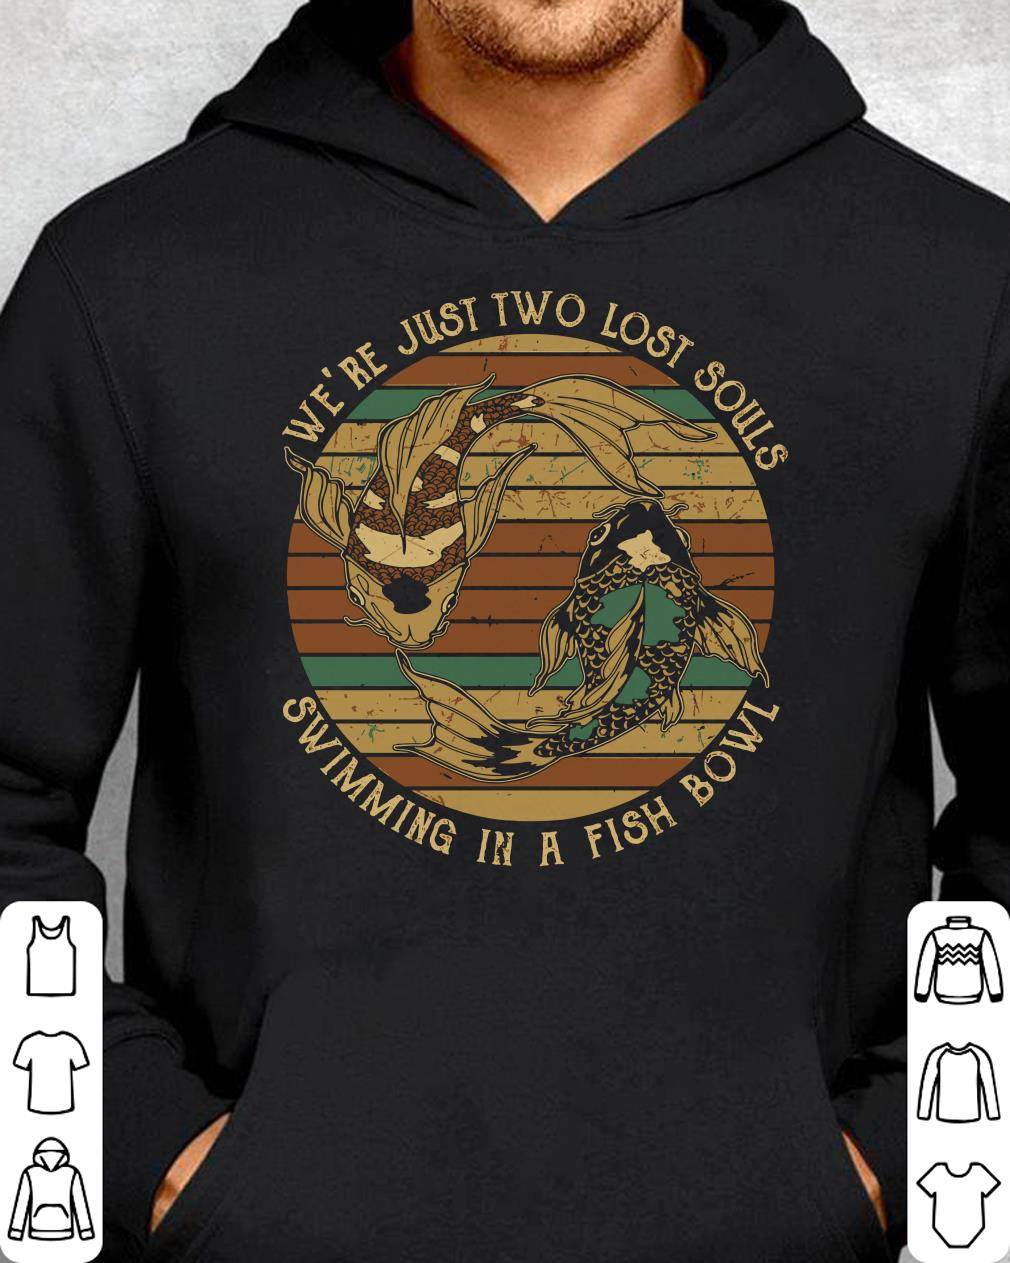 https://teeforme.net/tee/2018/12/We-re-just-two-lost-souls-Swimming-in-a-fish-bowl-shirt_4.jpg